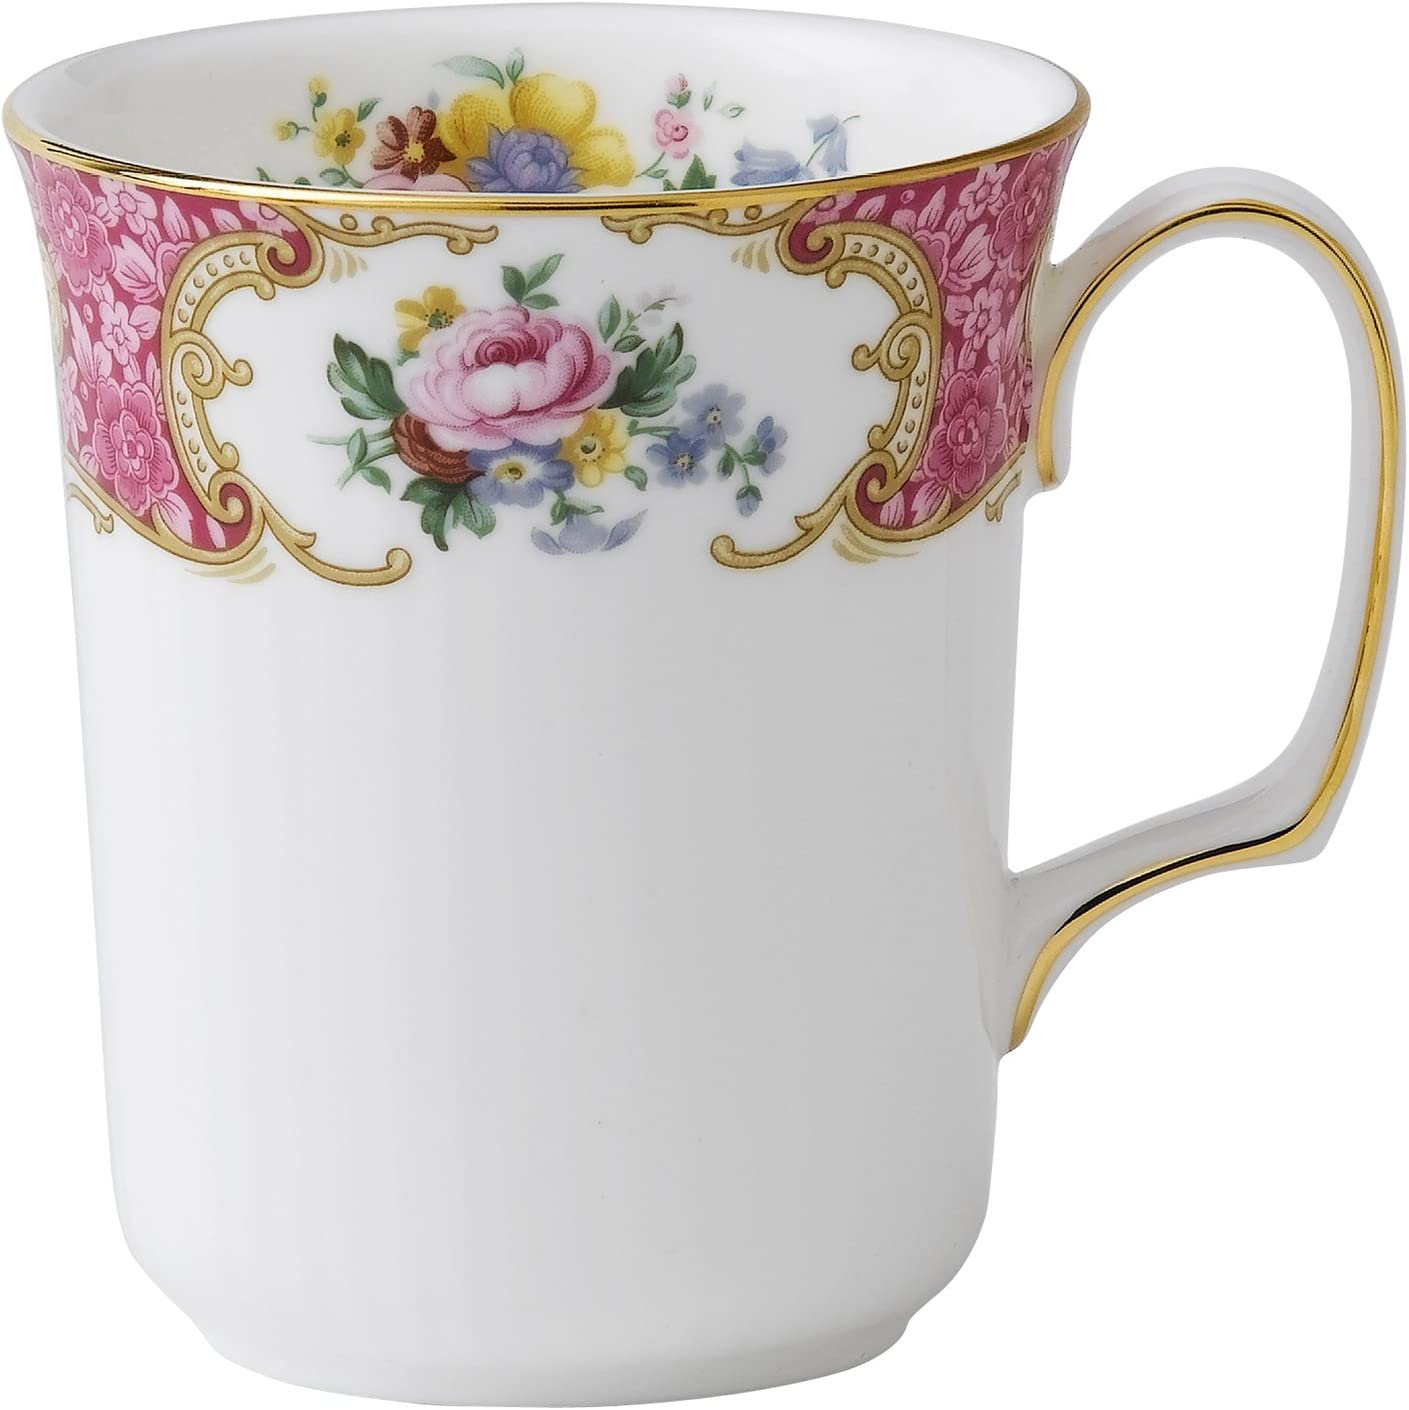 Royal Albert Lady Carlyle Bone China Beaker Mug, Multicolor, 8 ounce